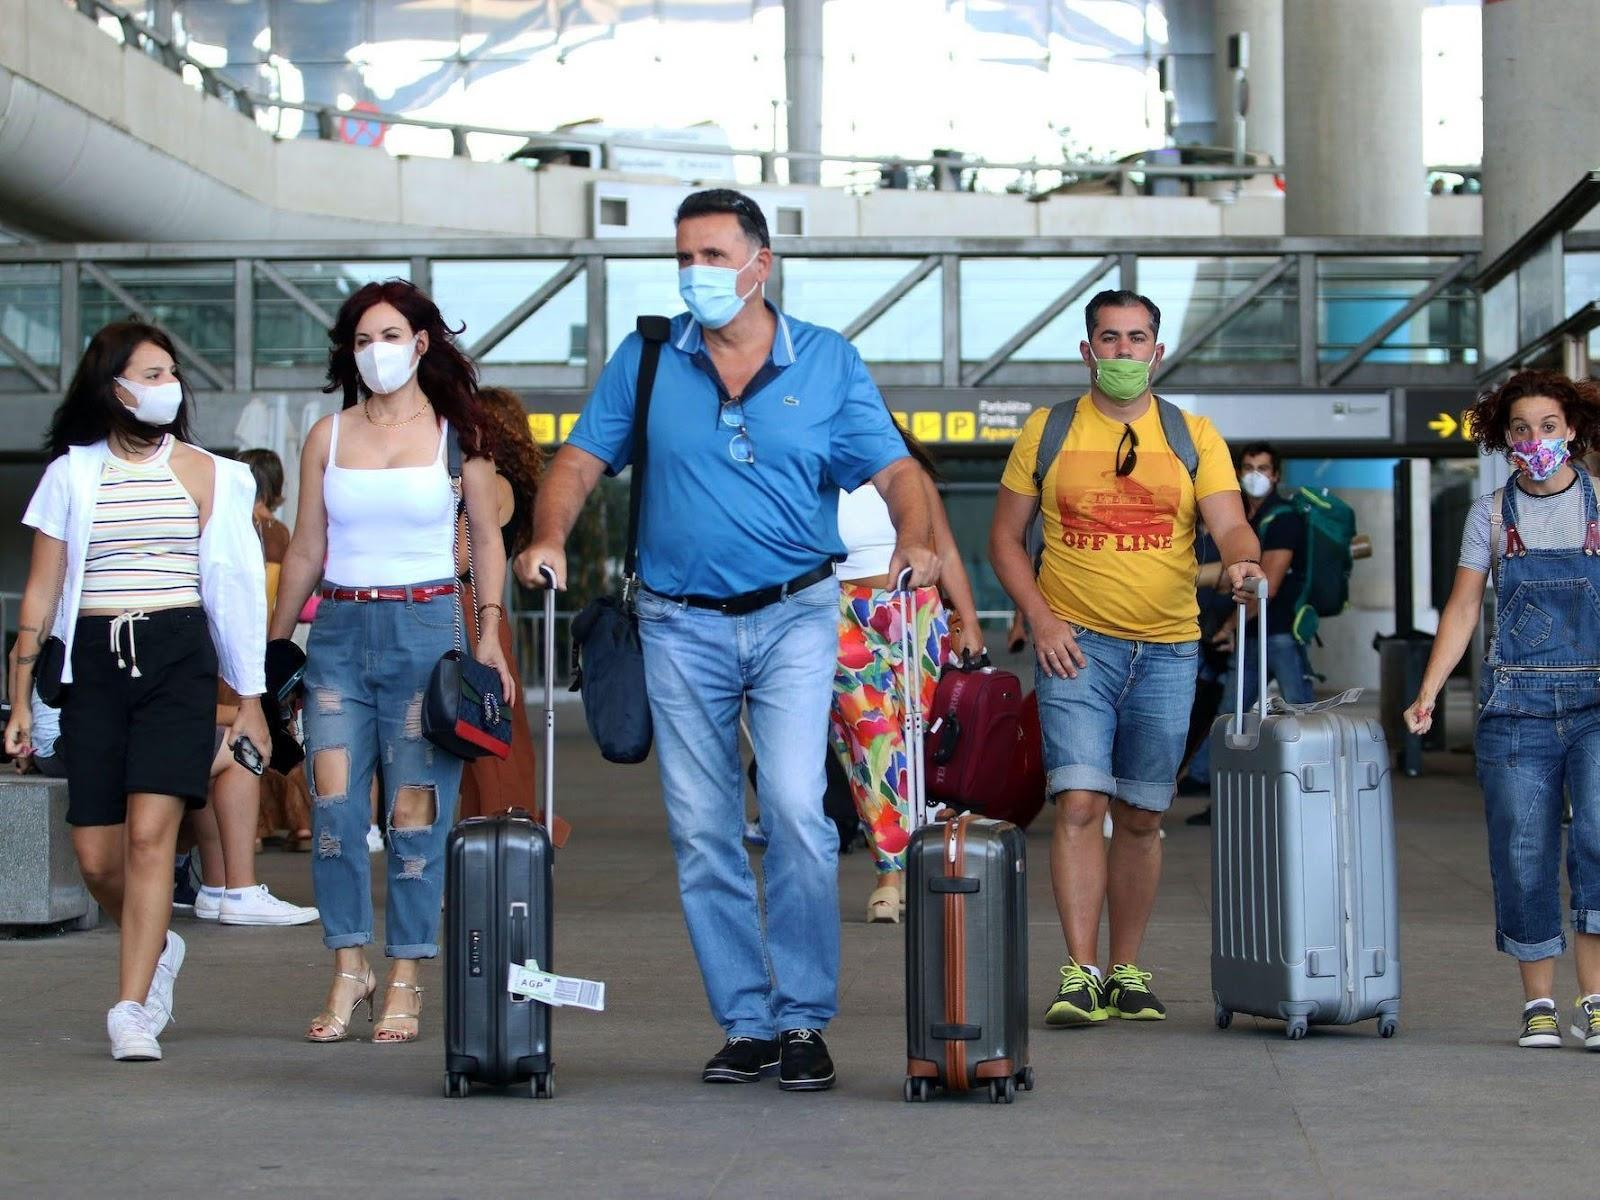 A mutated coronavirus strain causes most new COVID-19 infections in Europe  and was spread within the continent by tourists, scientists say   Business  Insider India